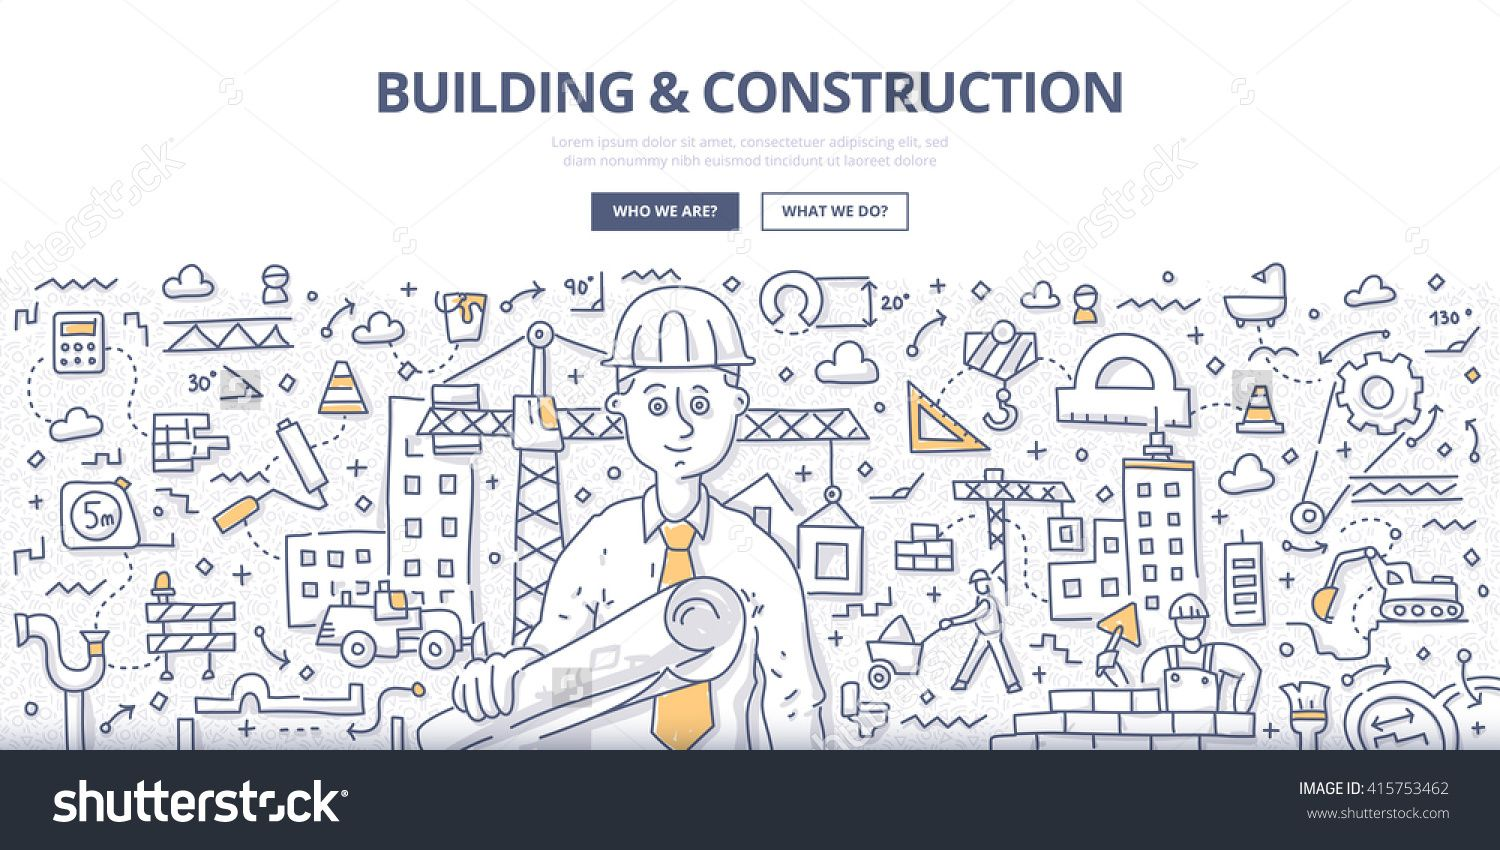 Doodle Vector Illustration Of Construction Contractor With